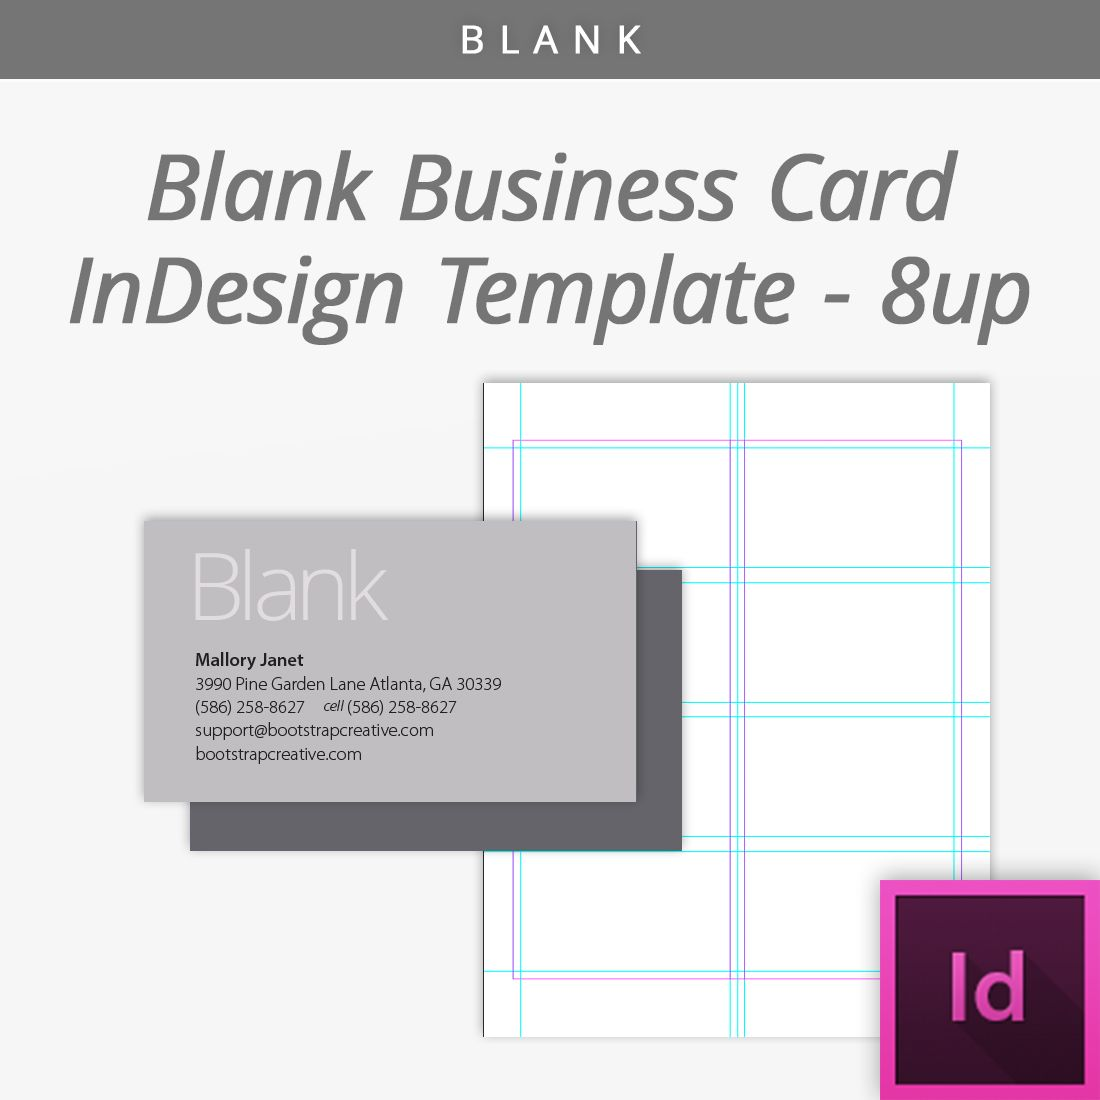 Blank InDesign Business Card Template Up Free Download - Indesign business card template free